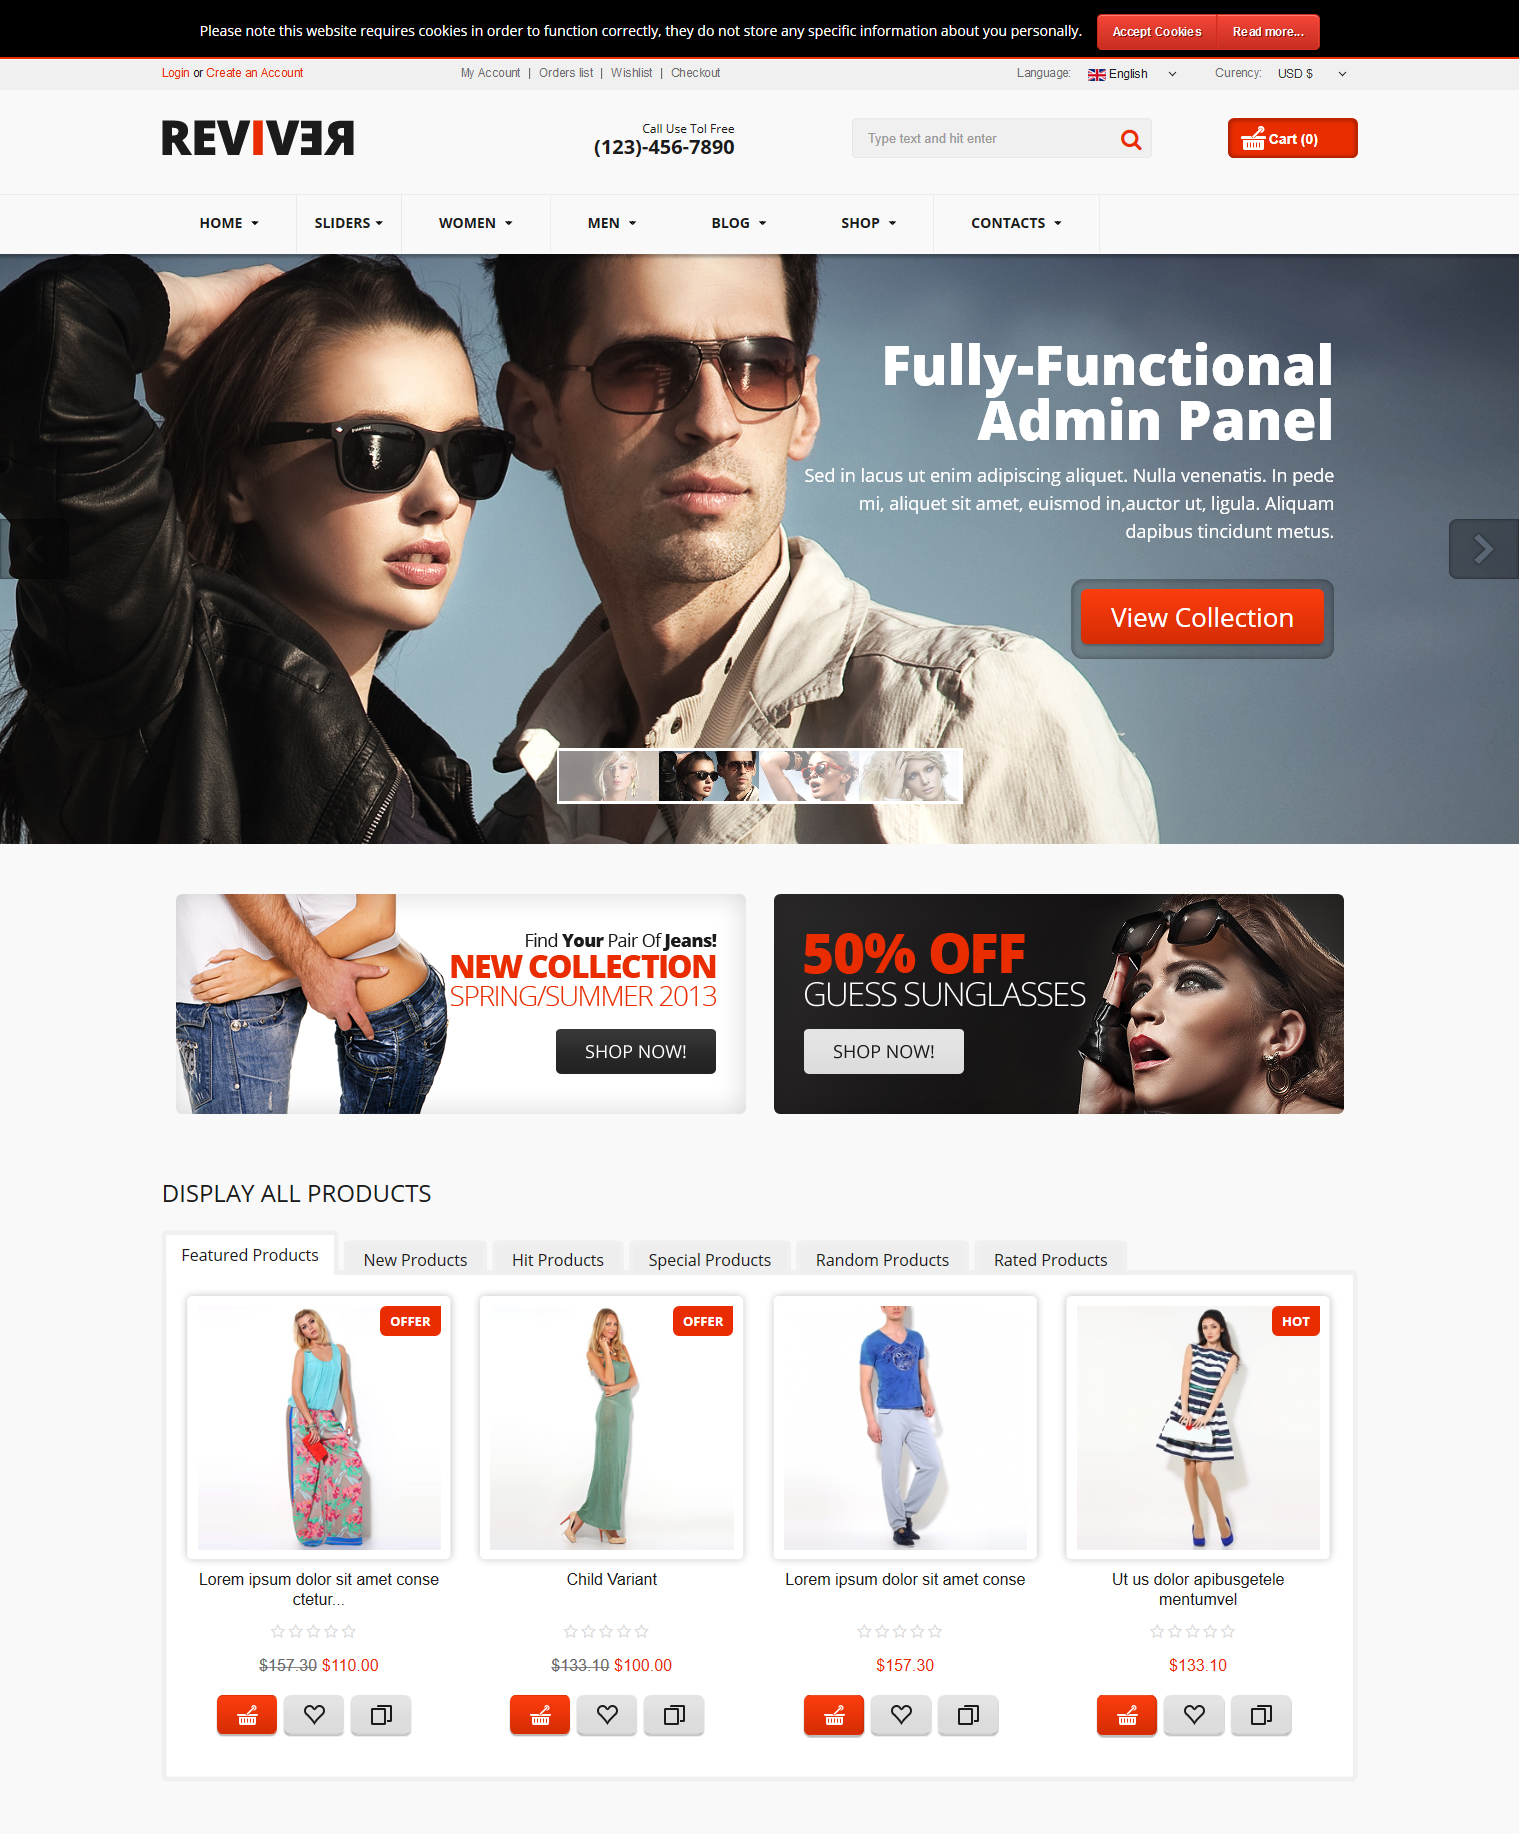 Best Virtuemart Templates For Your ECommerce Site - Free ecommerce website templates shopping cart